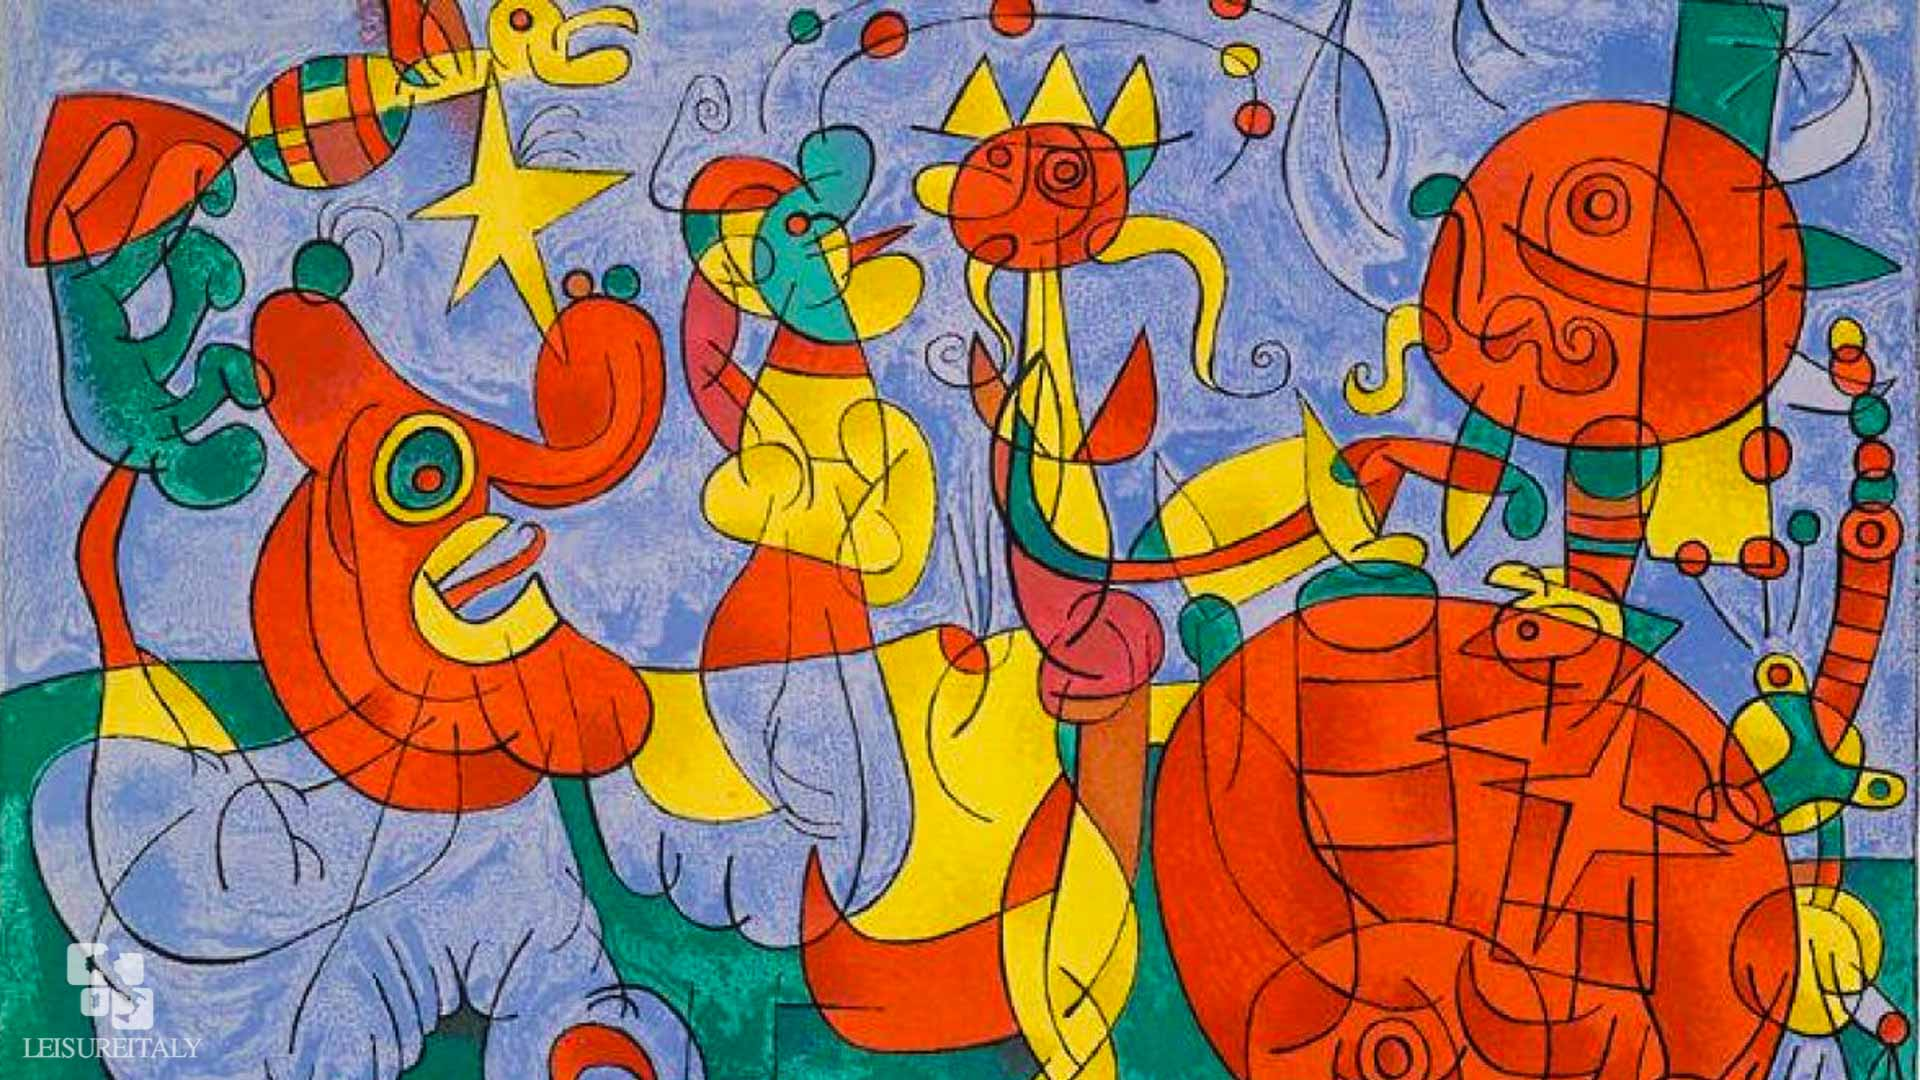 Naples Joan Miró And The Languages Of The Signs Leisure Italy